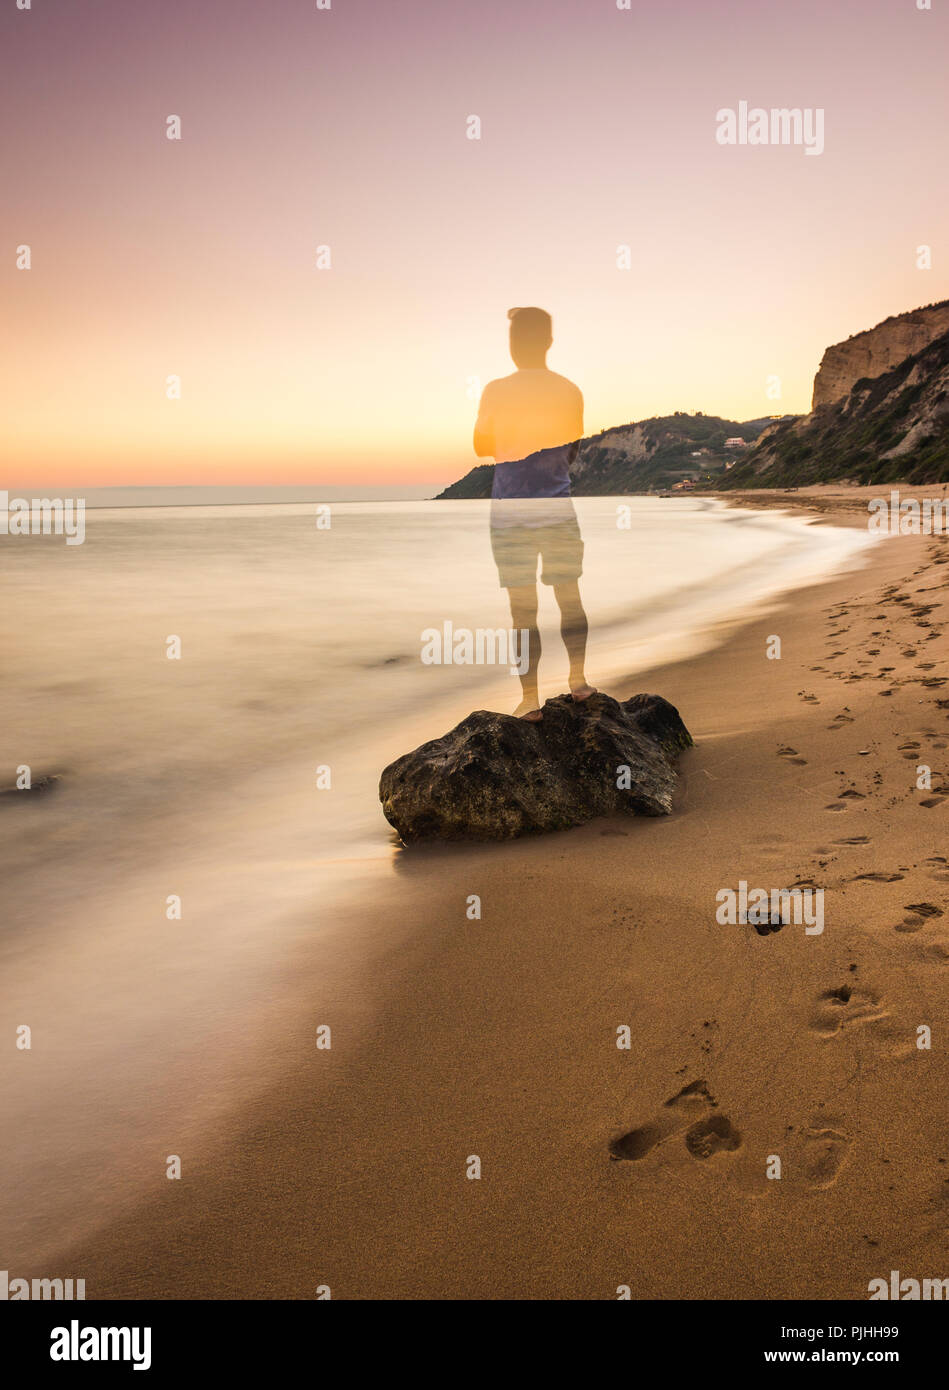 Long exposure of a person standing on a rock by the shore. Opaque effect. - Stock Image